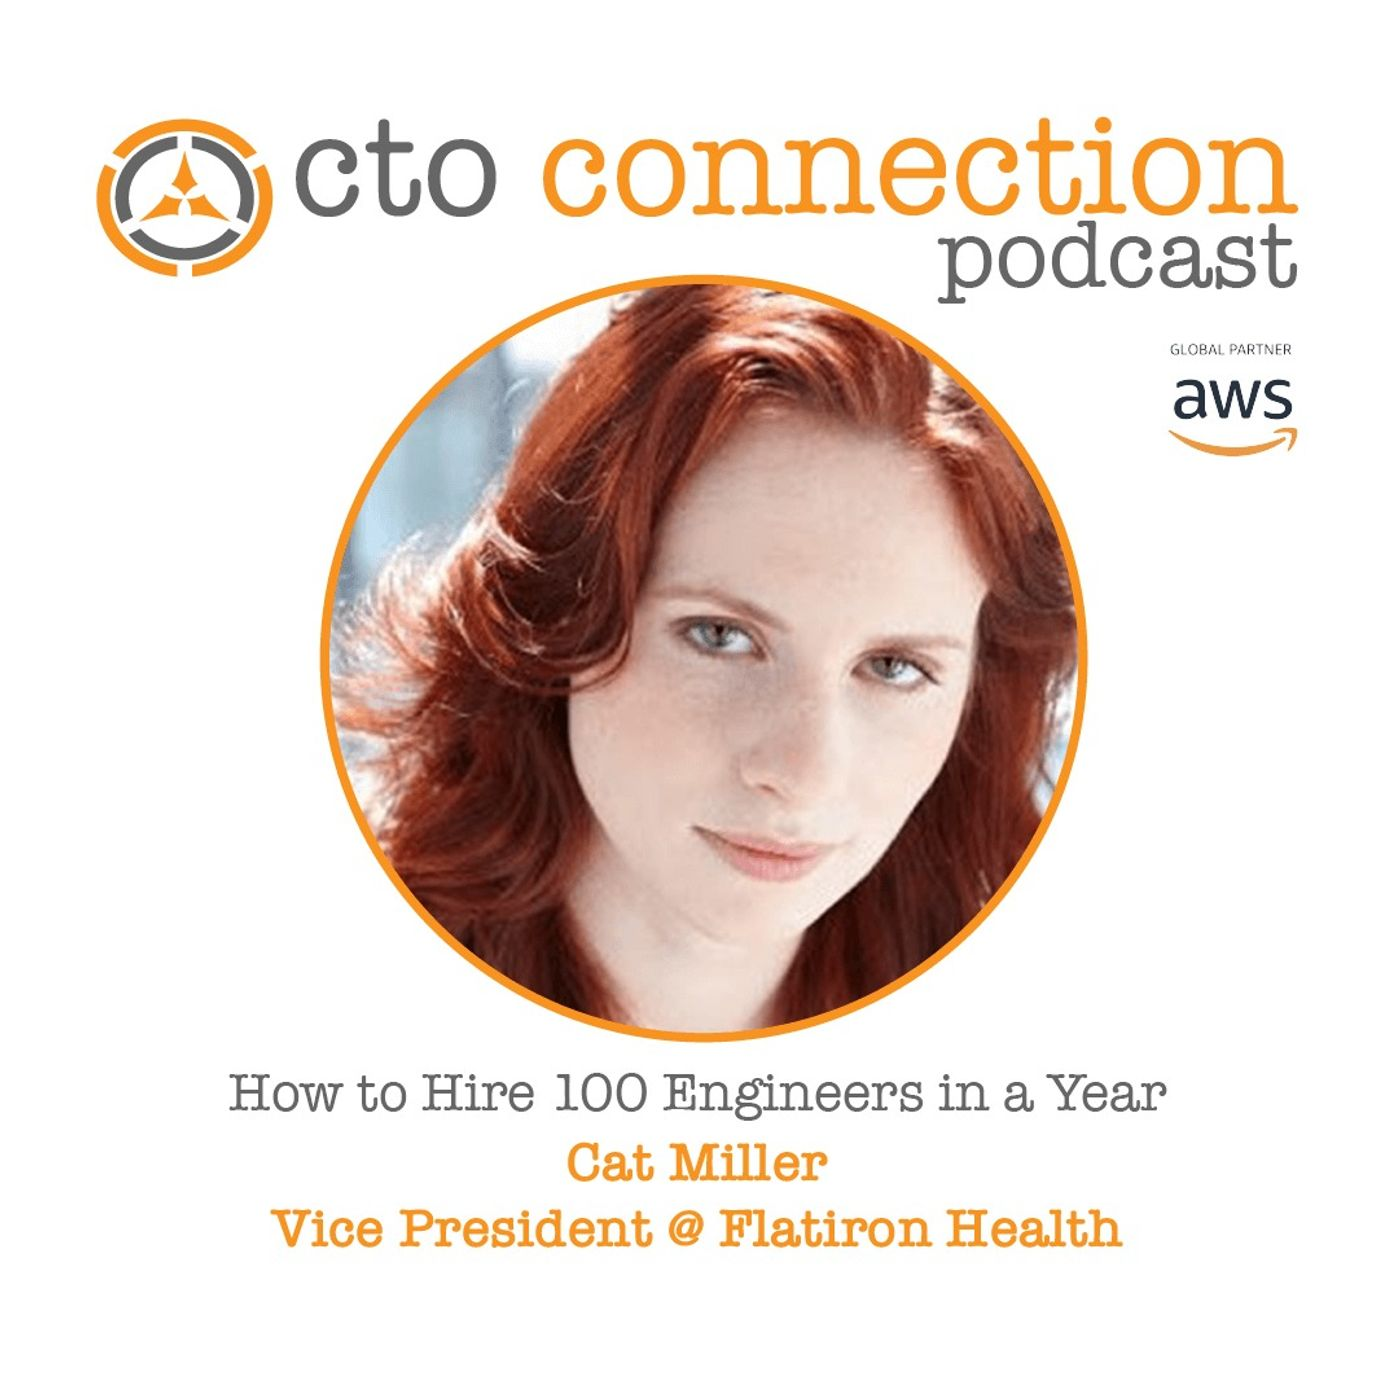 How to Hire 100 Engineers in a Year with Cat Miller